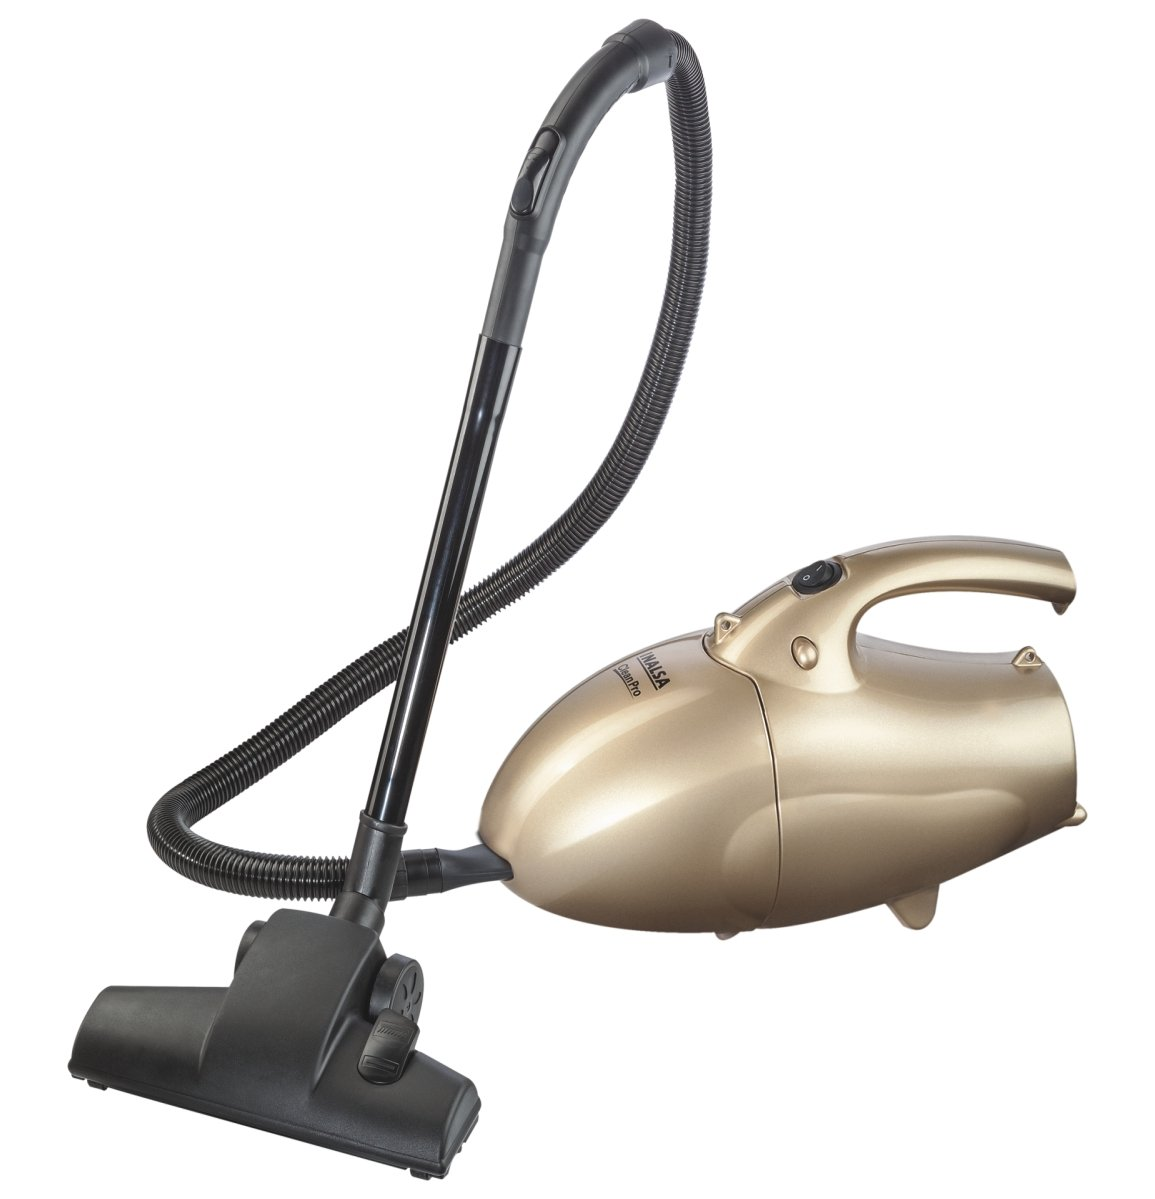 Inalsa Clean Pro 800 Watt Dry Vacuum Cleaner with 5m Long Cord,Gold